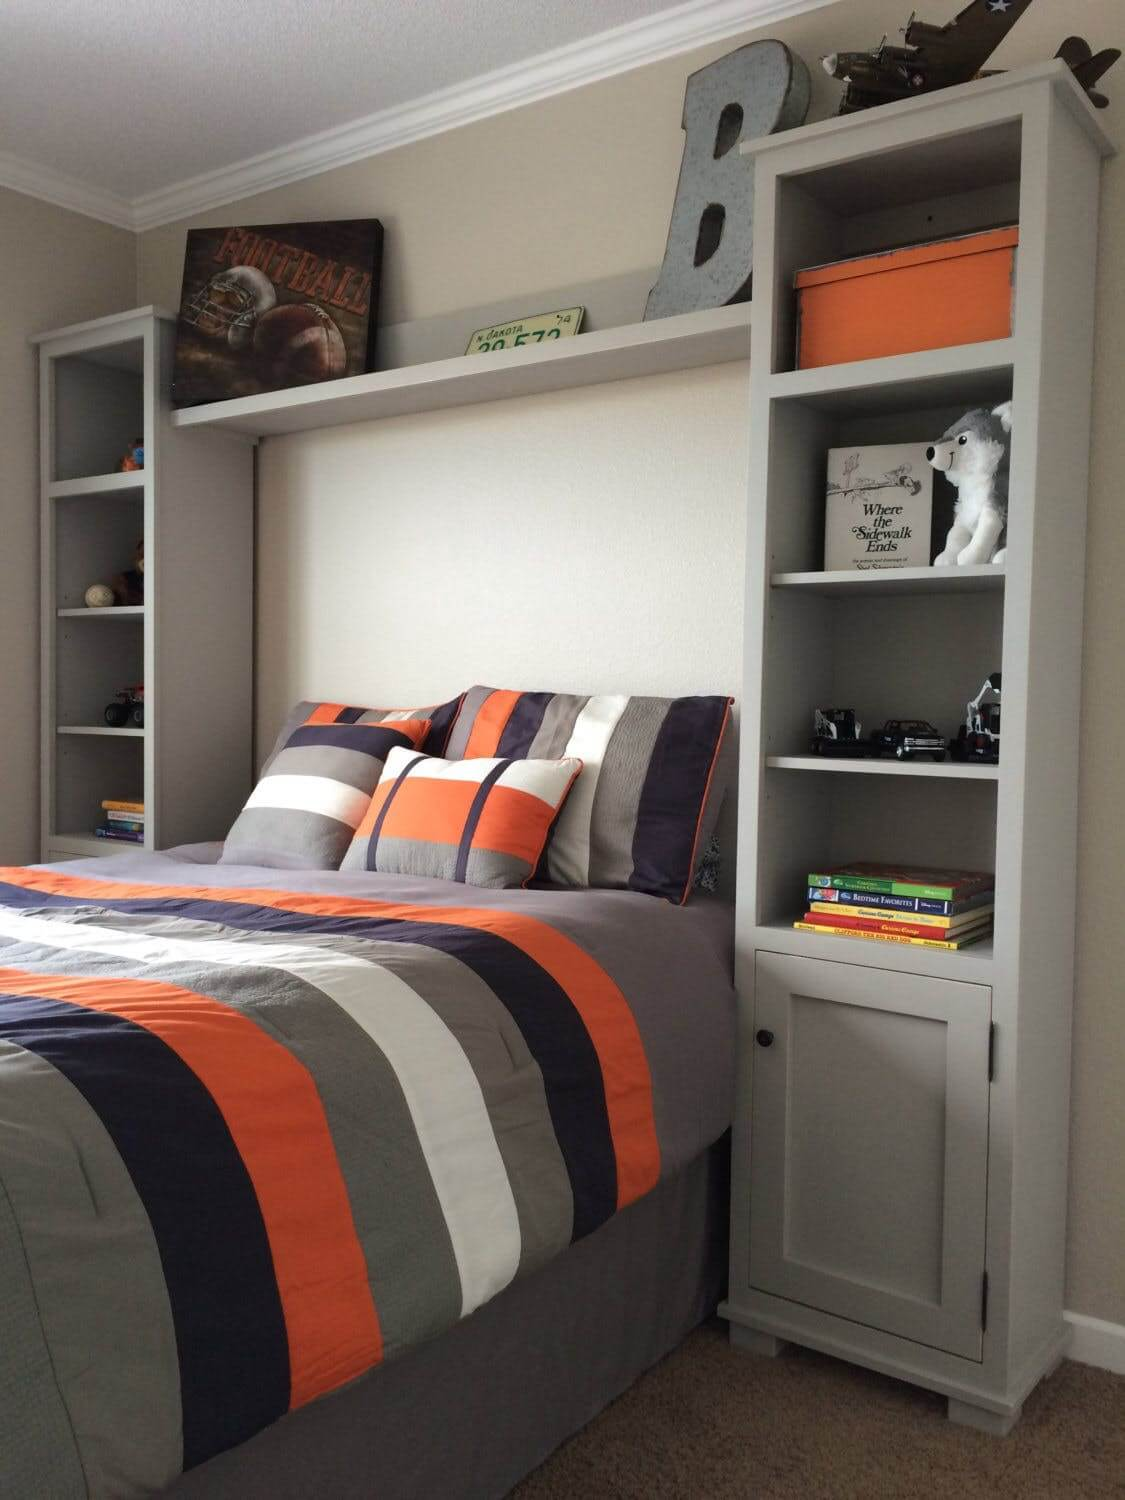 33 Best Teenage Boy Room Decor Ideas and Designs for 2020 on Small Bedroom Ideas For Teenage Guys  id=90085